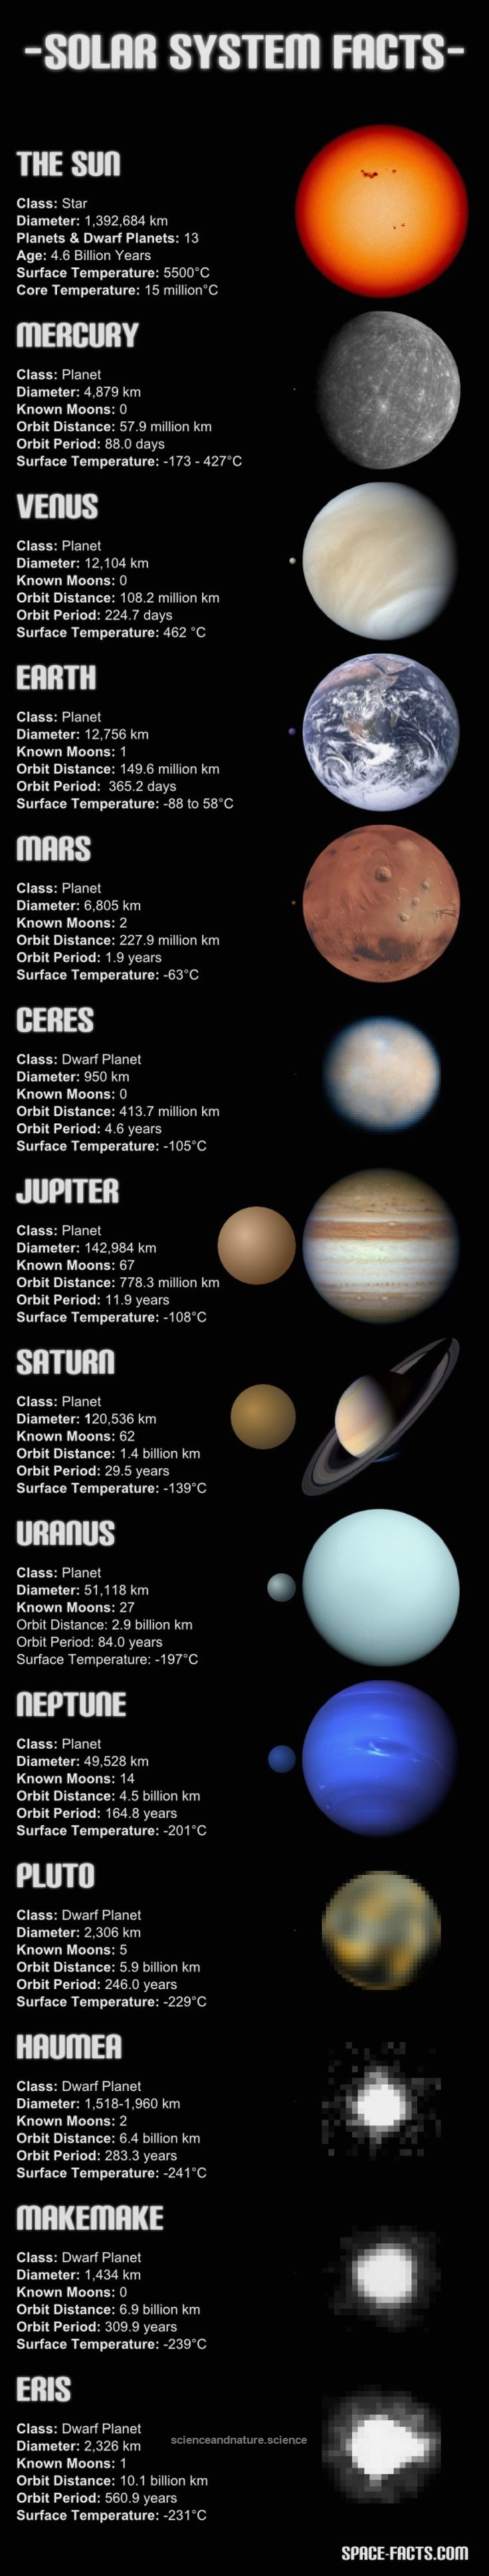 Pin by Scienceandnature on Planets | Pinterest | Solar ...